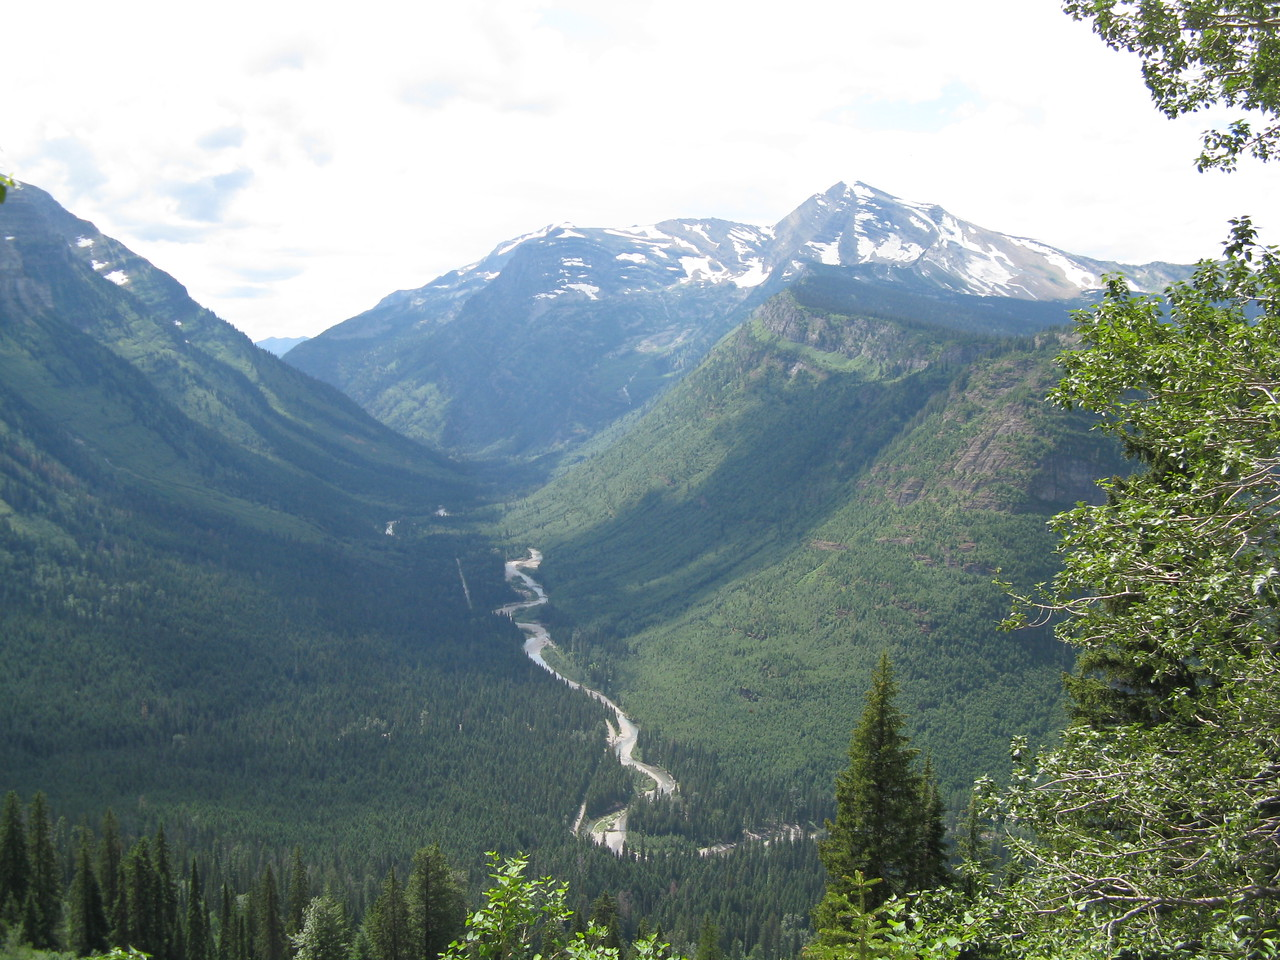 Another view of the valley below us.  The road can be seen as the thin line on the left side of the creek at the bottom of the valley.